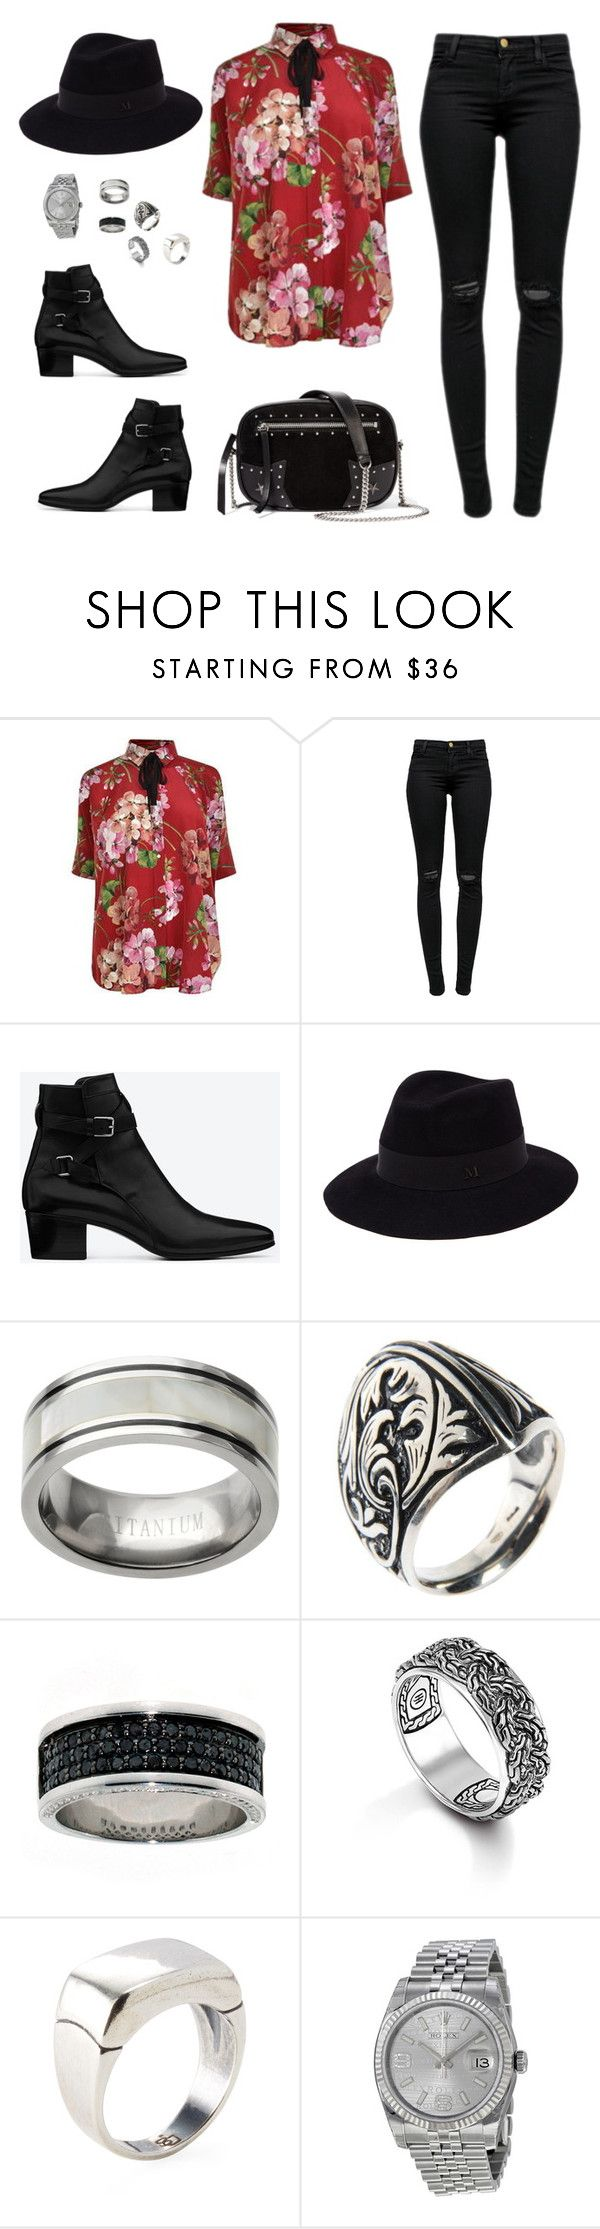 """If Harry Styles was a girl"" by dasha-bykanova ❤ liked on Polyvore featuring Gucci, J Brand, Yves Saint Laurent, Maison Michel, Manuel Bozzi, John Hardy, Degs & Sal, Rolex and Karl Lagerfeld"